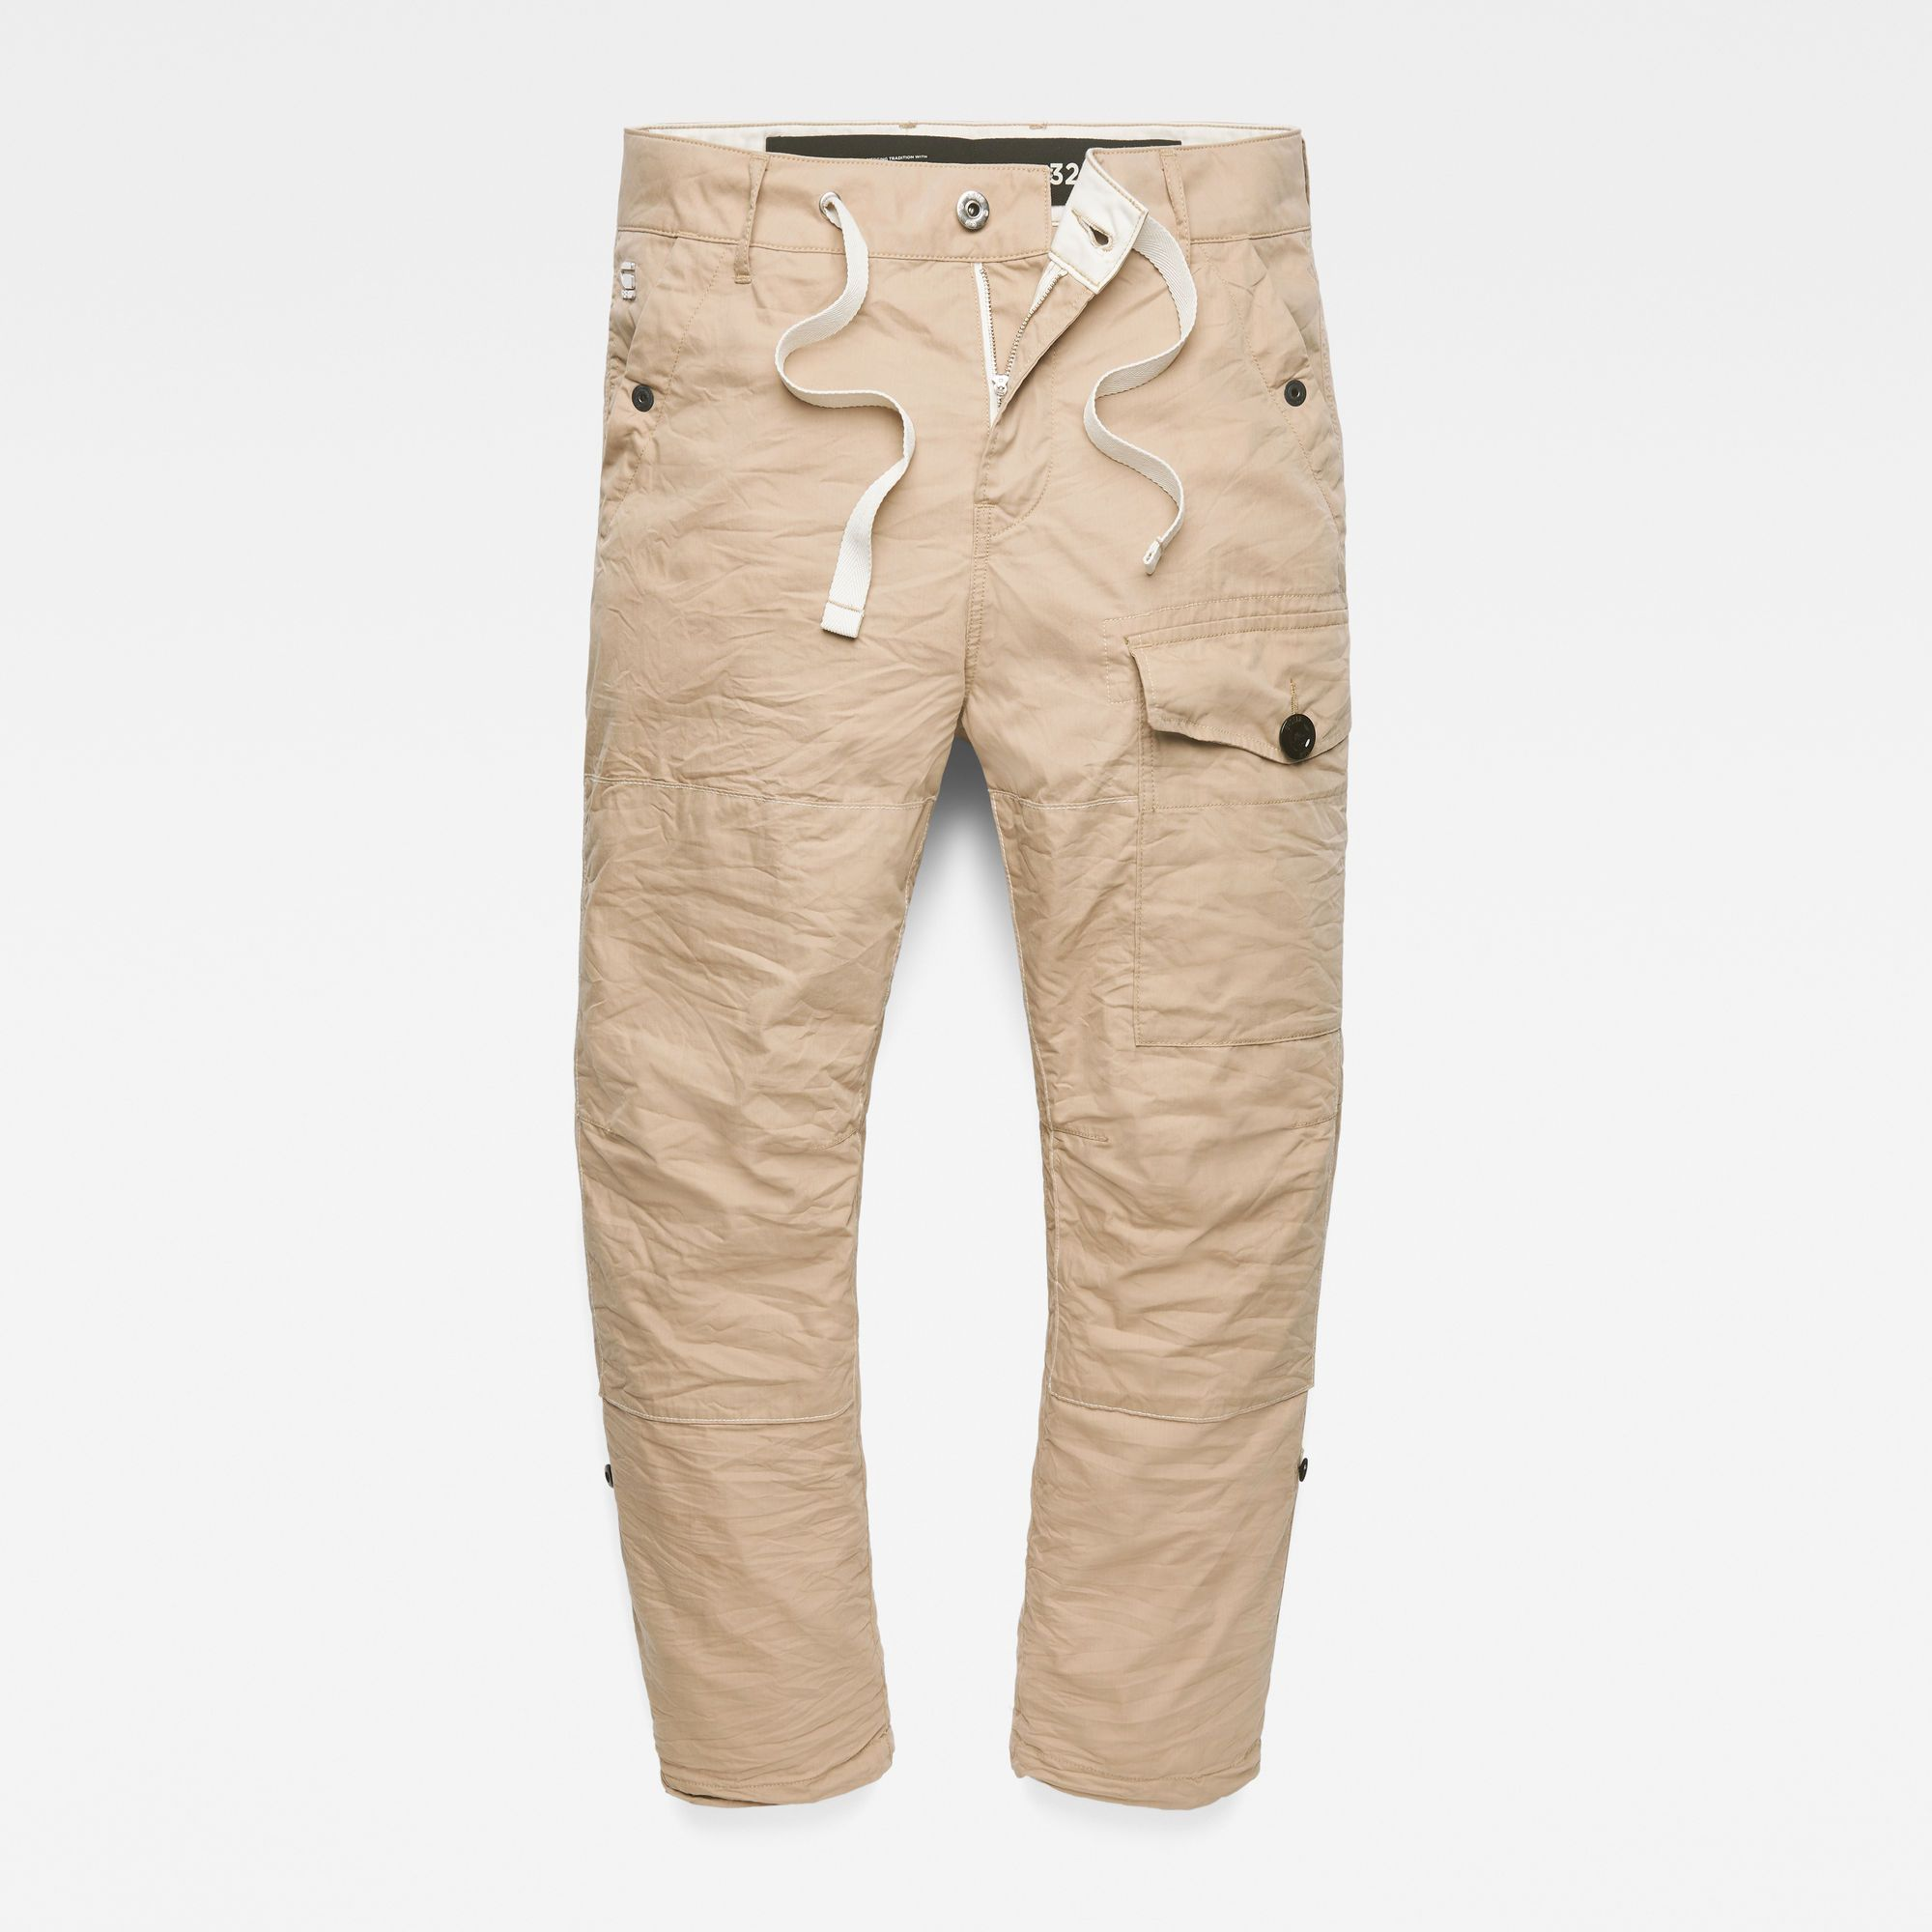 ca8b22f3faa Torrick Relaxed Pants in 2019 | G-Star Raw Clothing | Raw clothing ...